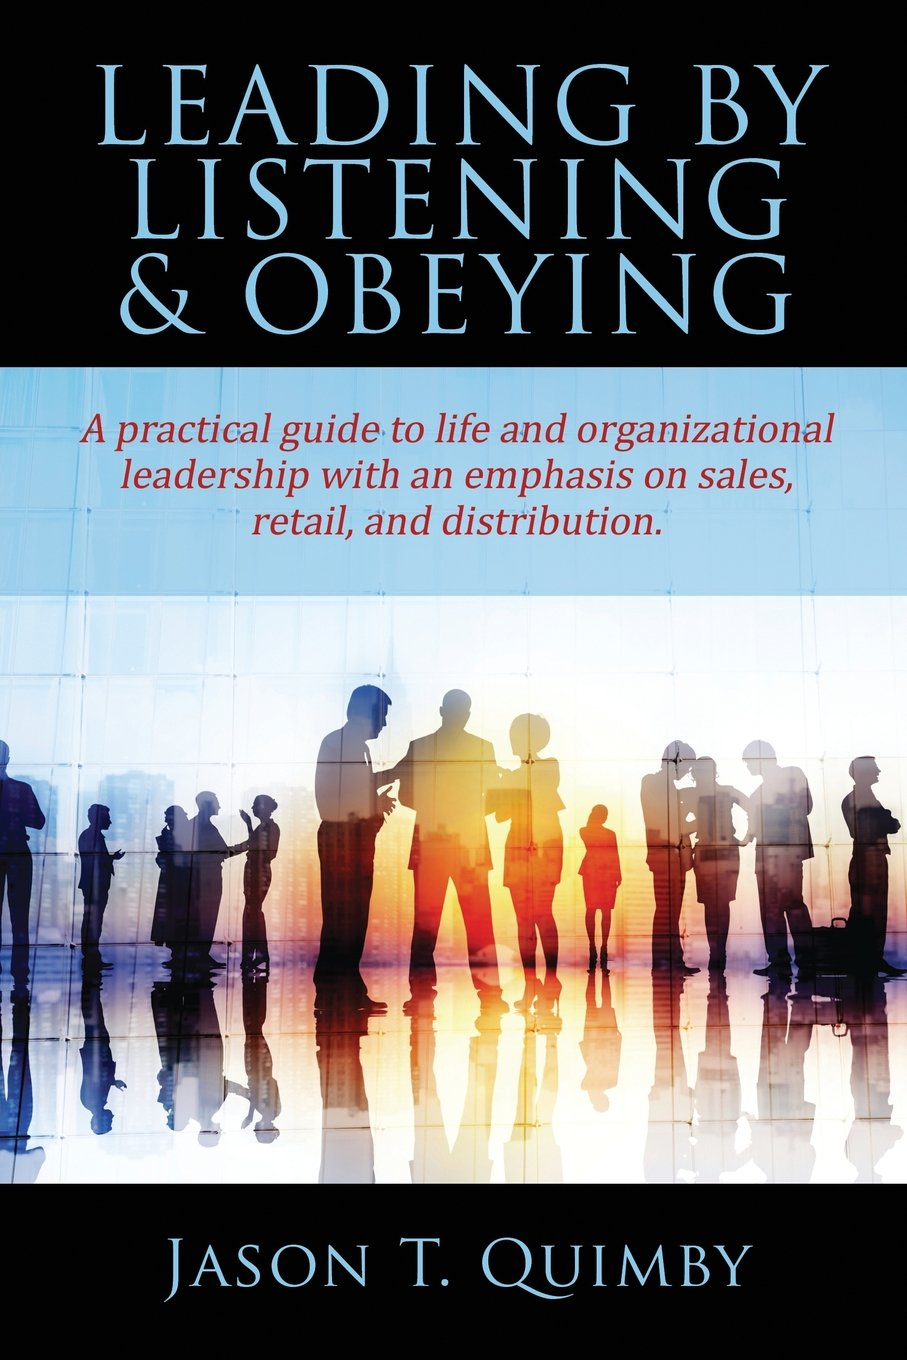 Read Online Leading by Listening & Obeying: A practical guide to life and organizational leadership with an emphasis on sales, retail, and distribution. pdf epub